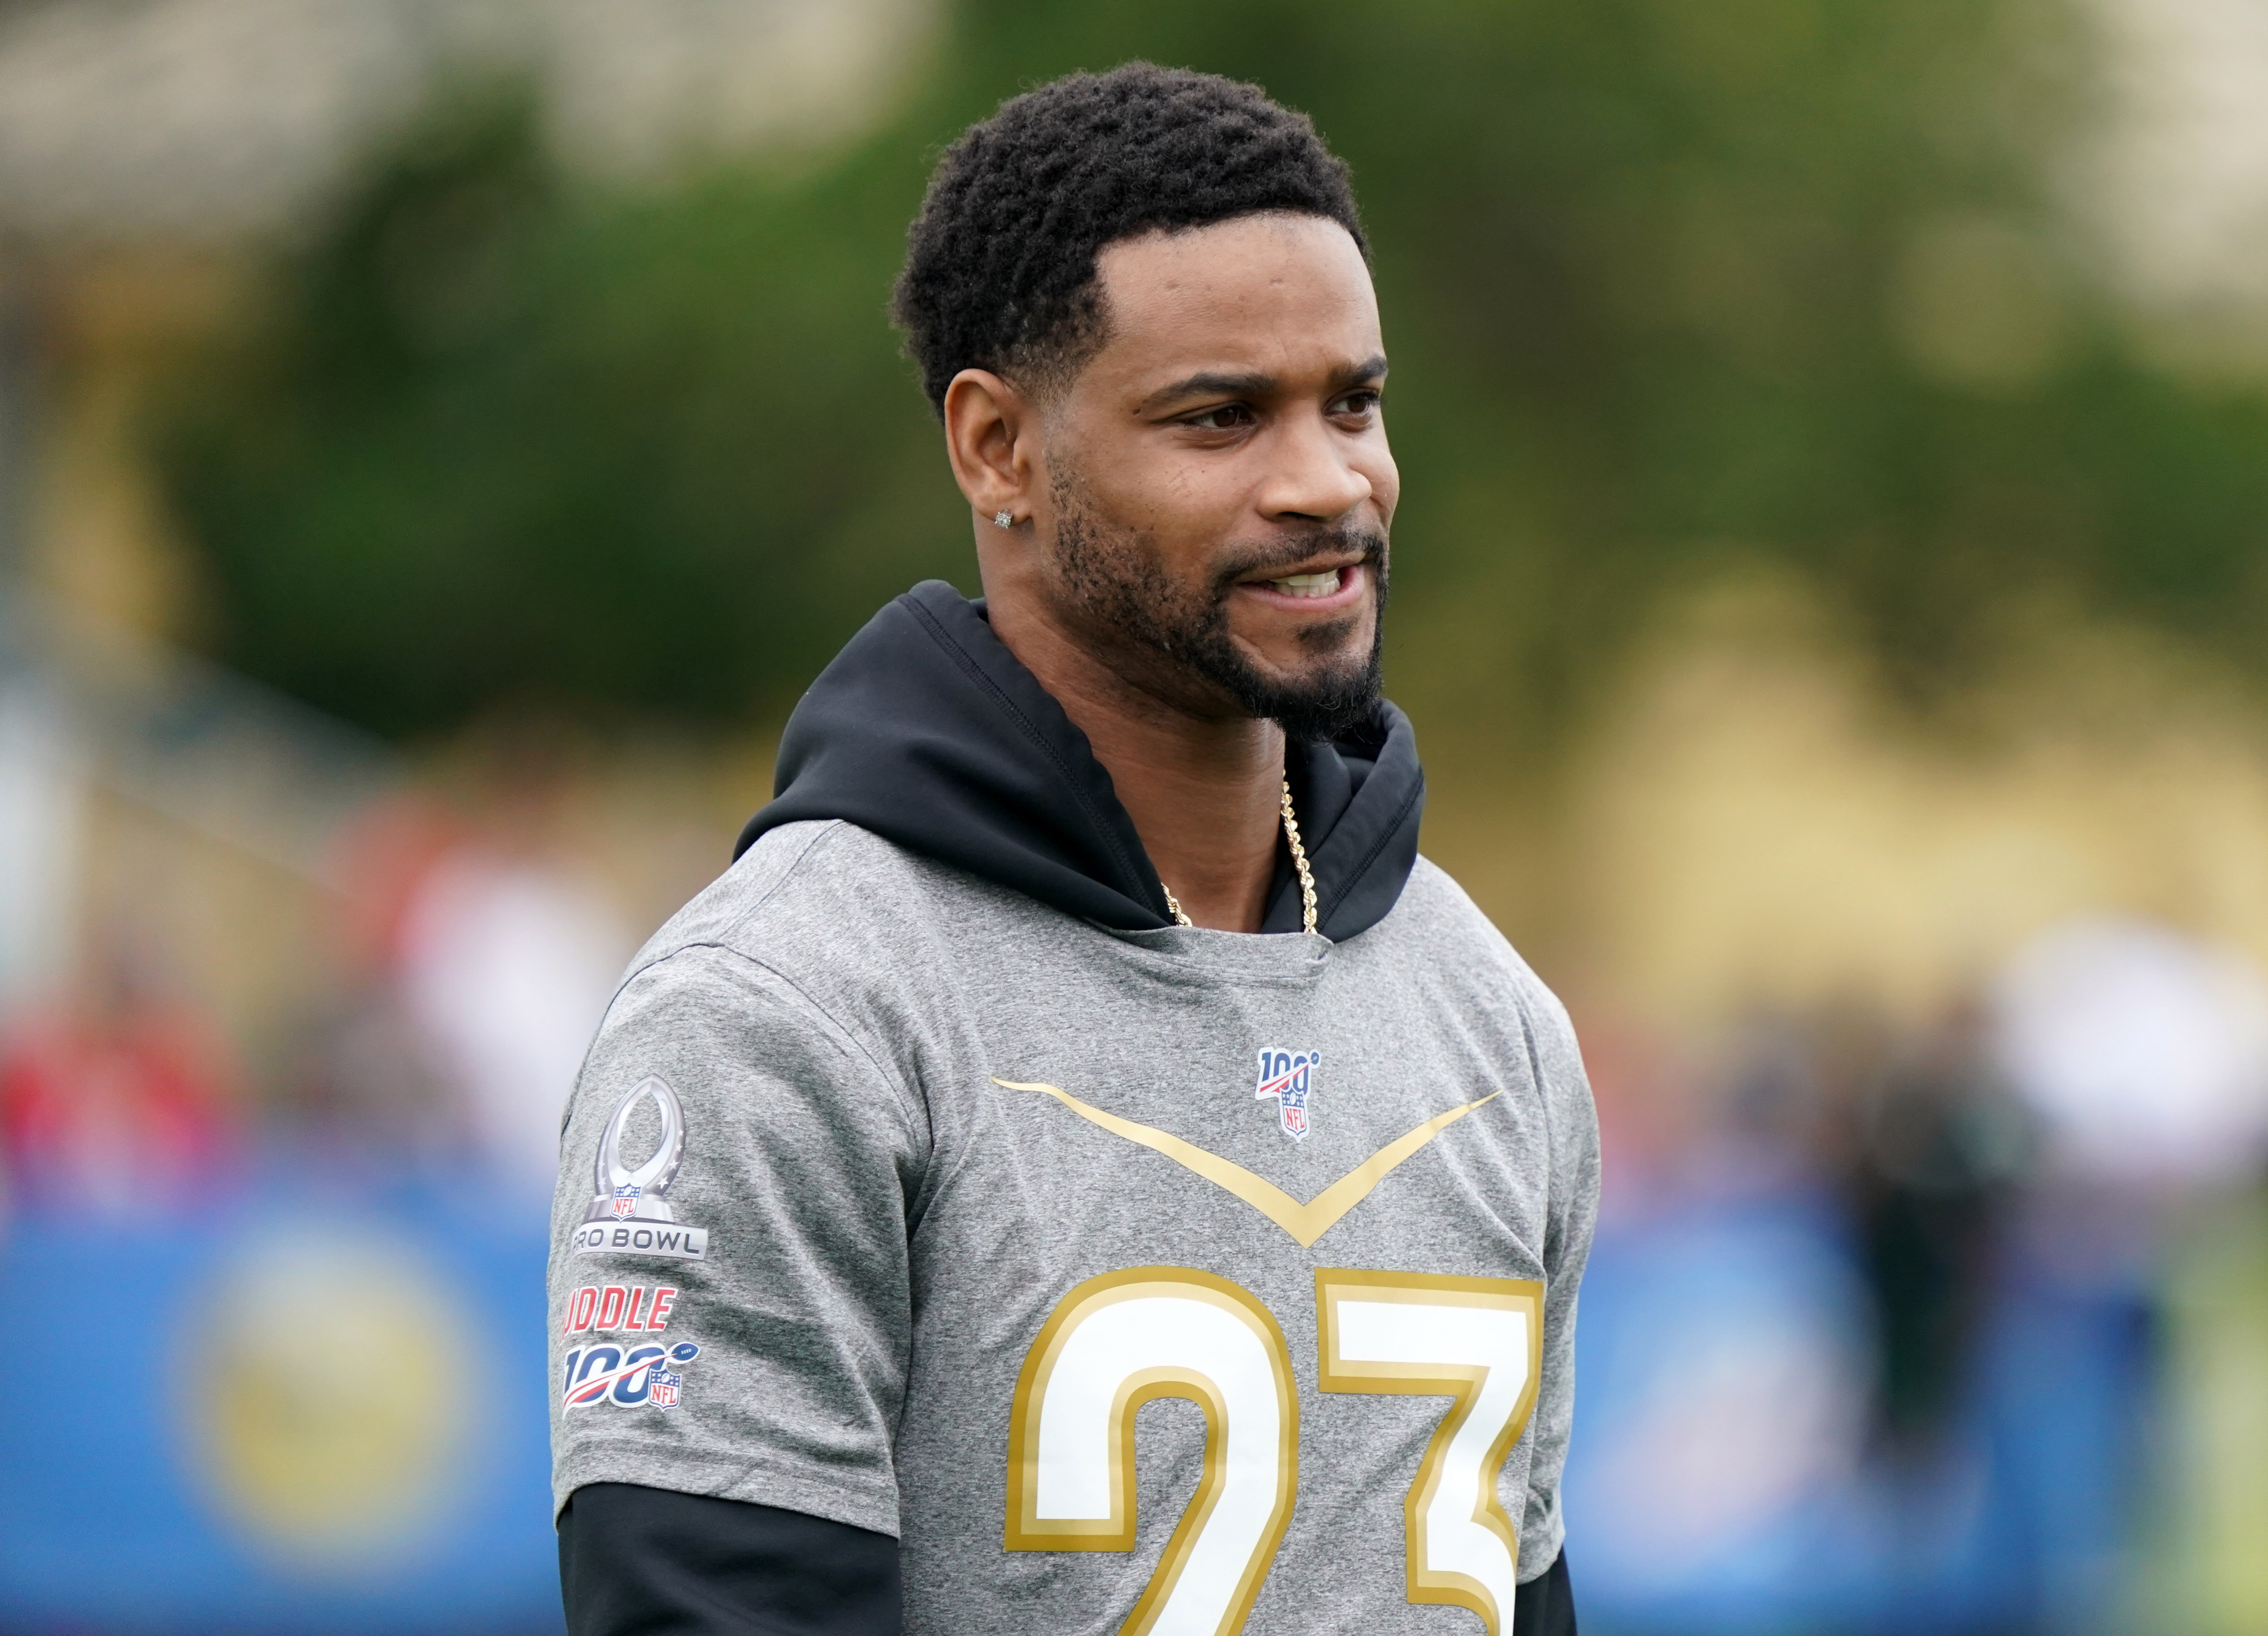 Lions trade rumors indicate team looking to move Darius Slay